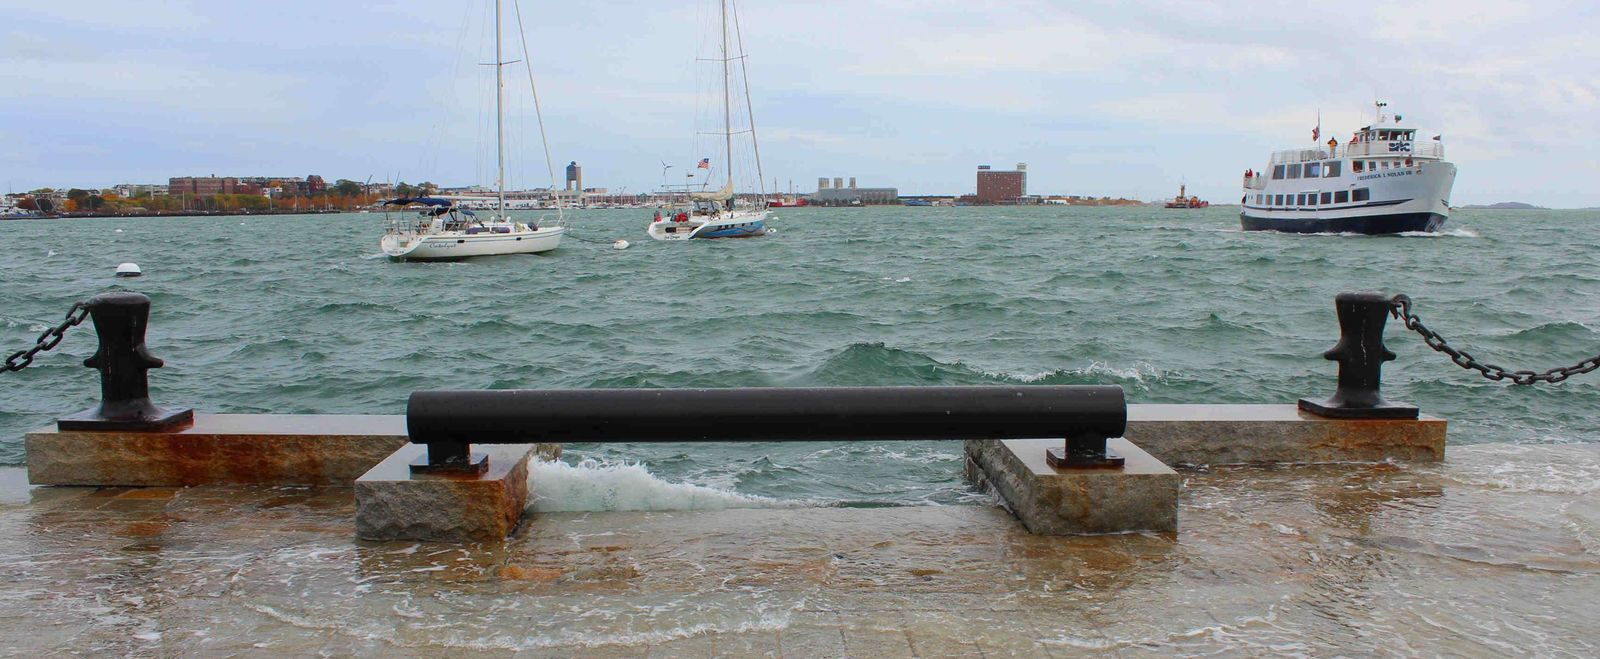 Rising Seas Boston Harbor